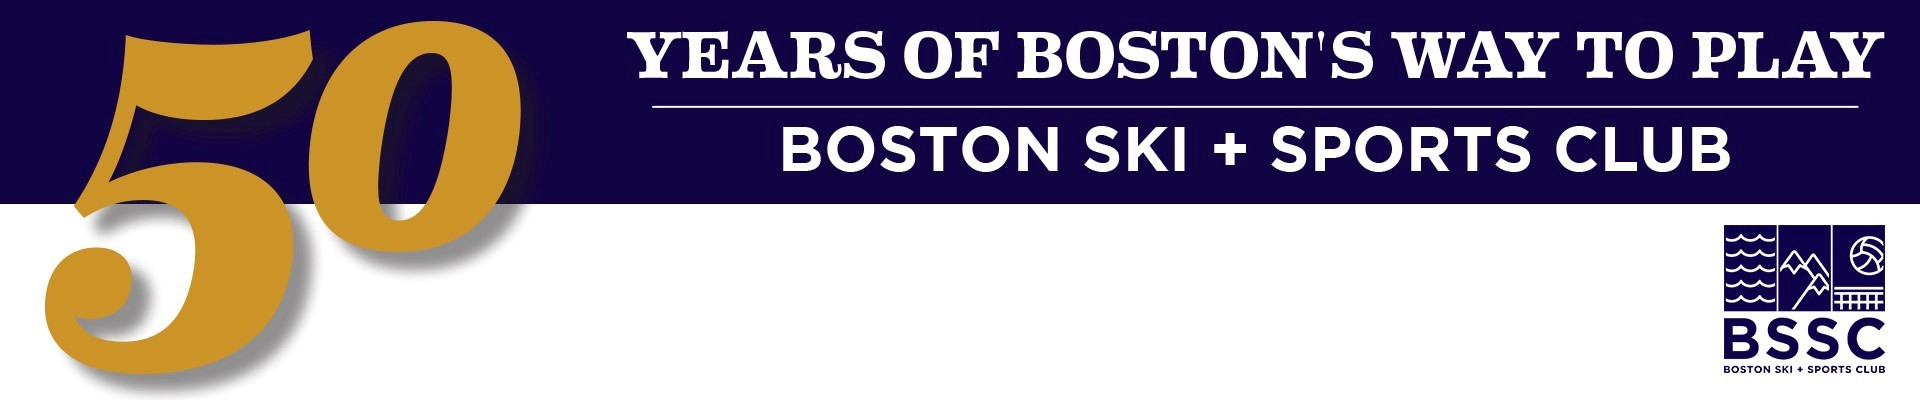 BSSC Celebrates 50 Years of business in Boston, MA in 2017